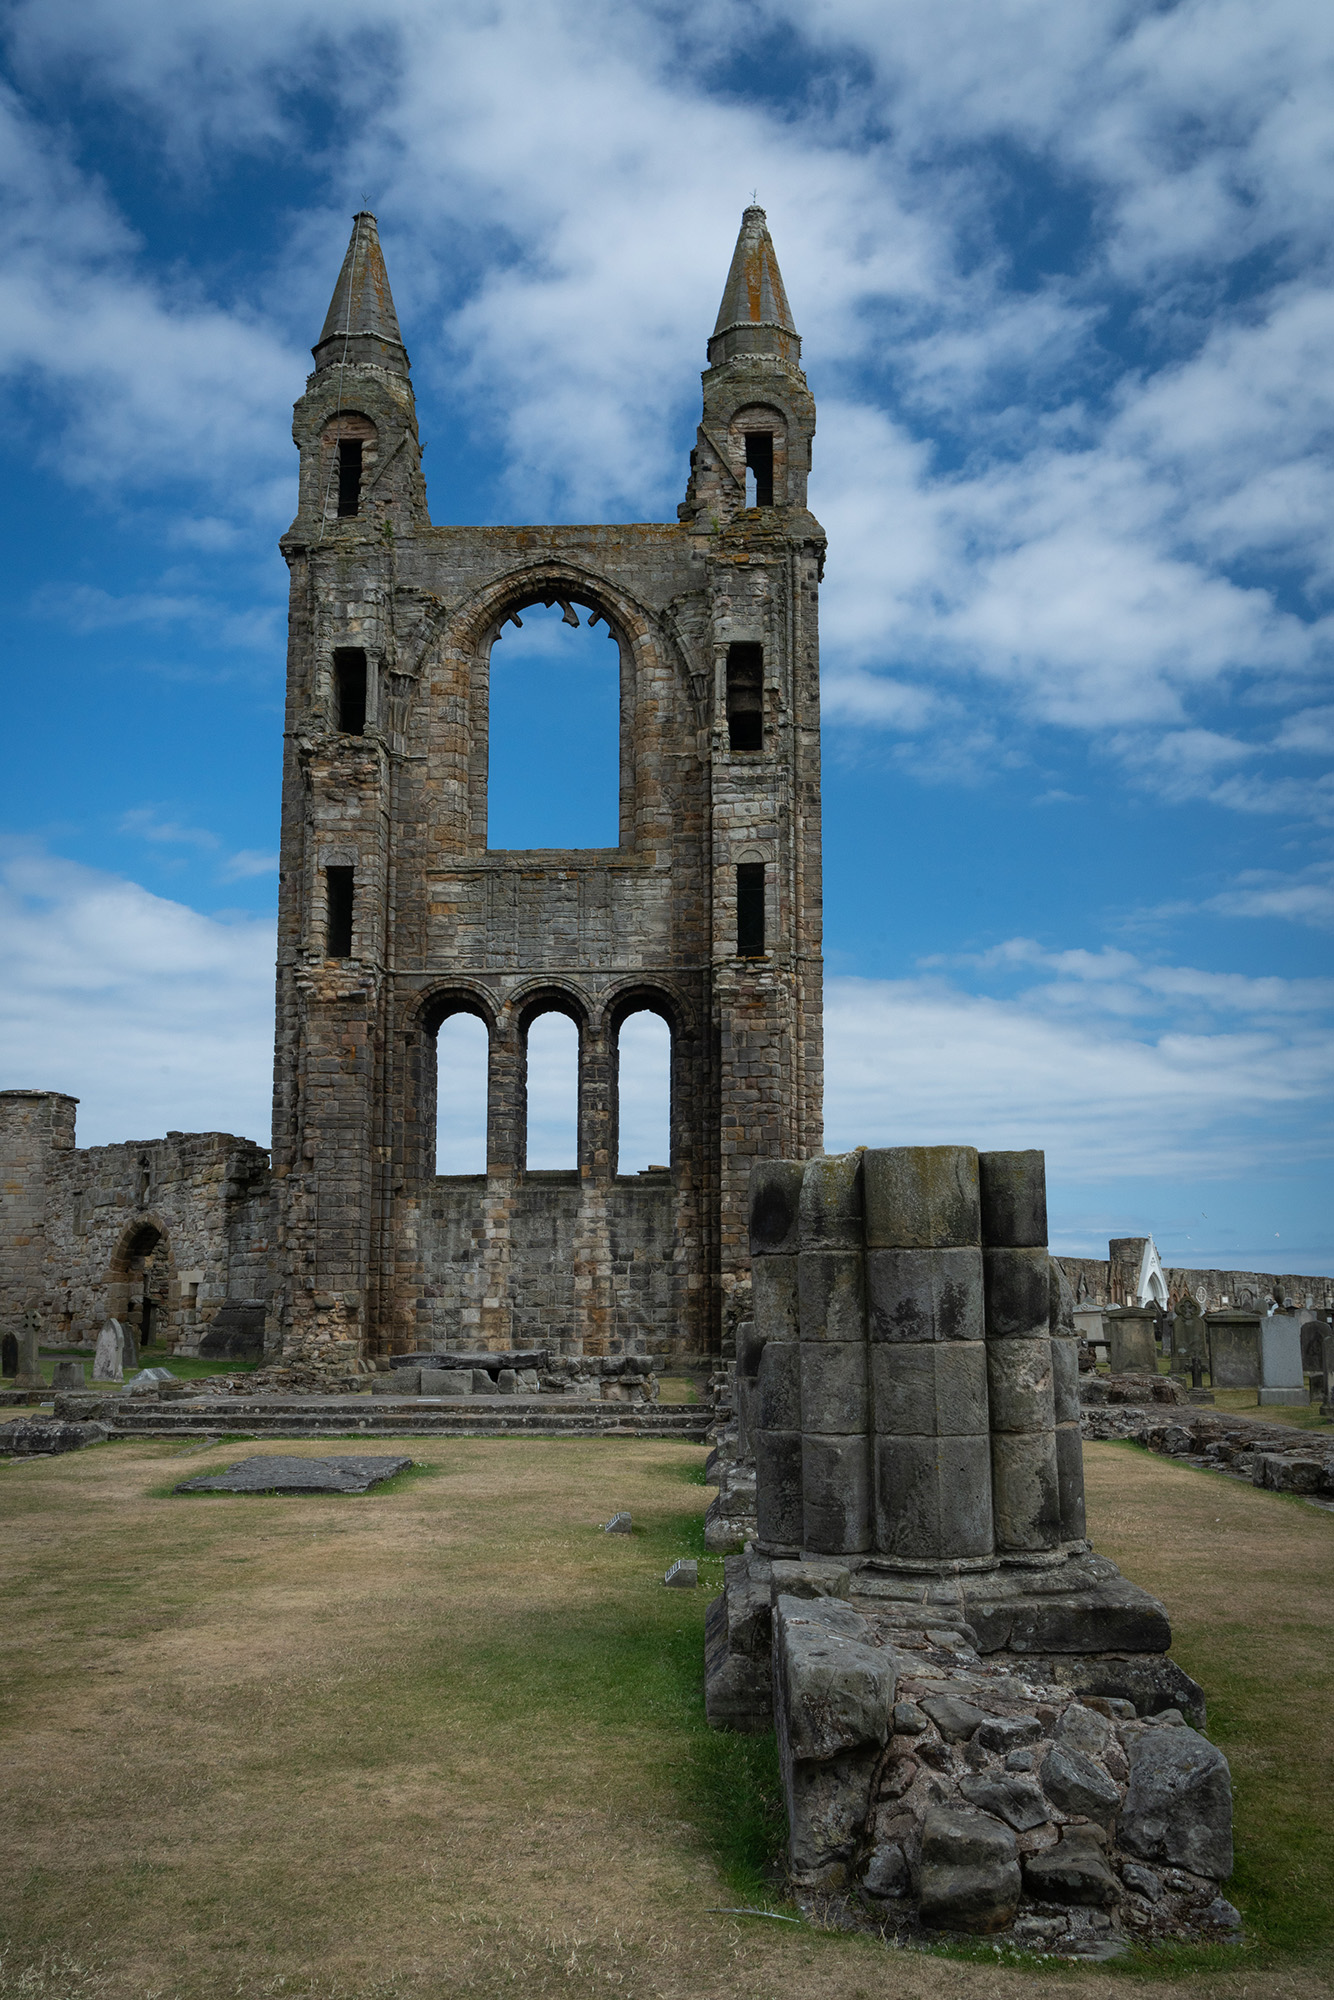 #cathedral, #scotland, #saintandrew, #saint, #standrews, #ruins, #story, #history